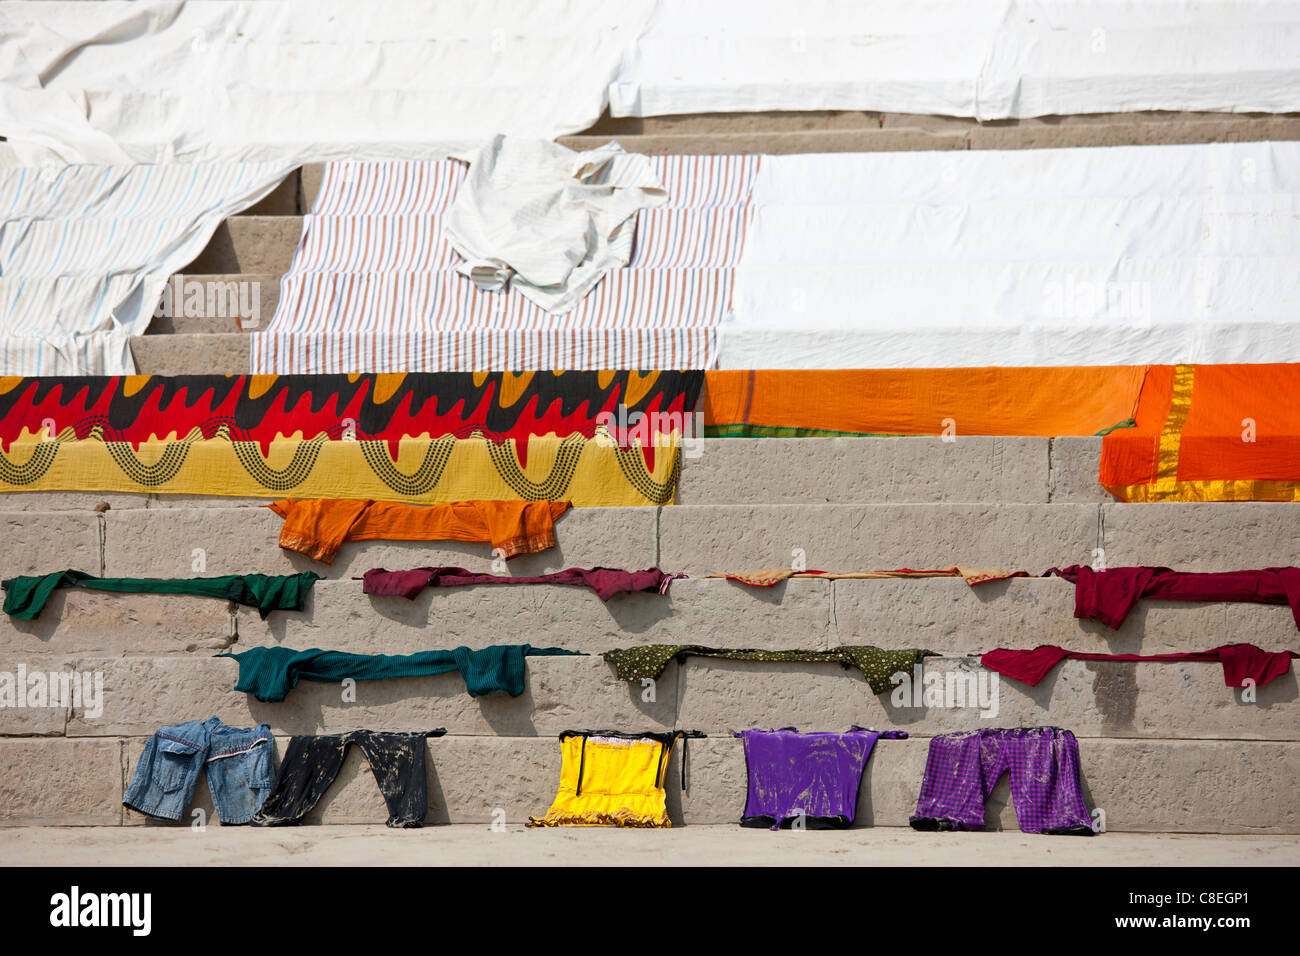 Laundry on the steps of the Ghats by The Ganges River at Kali Ghat in City of Varanasi, Benares, India - Stock Image